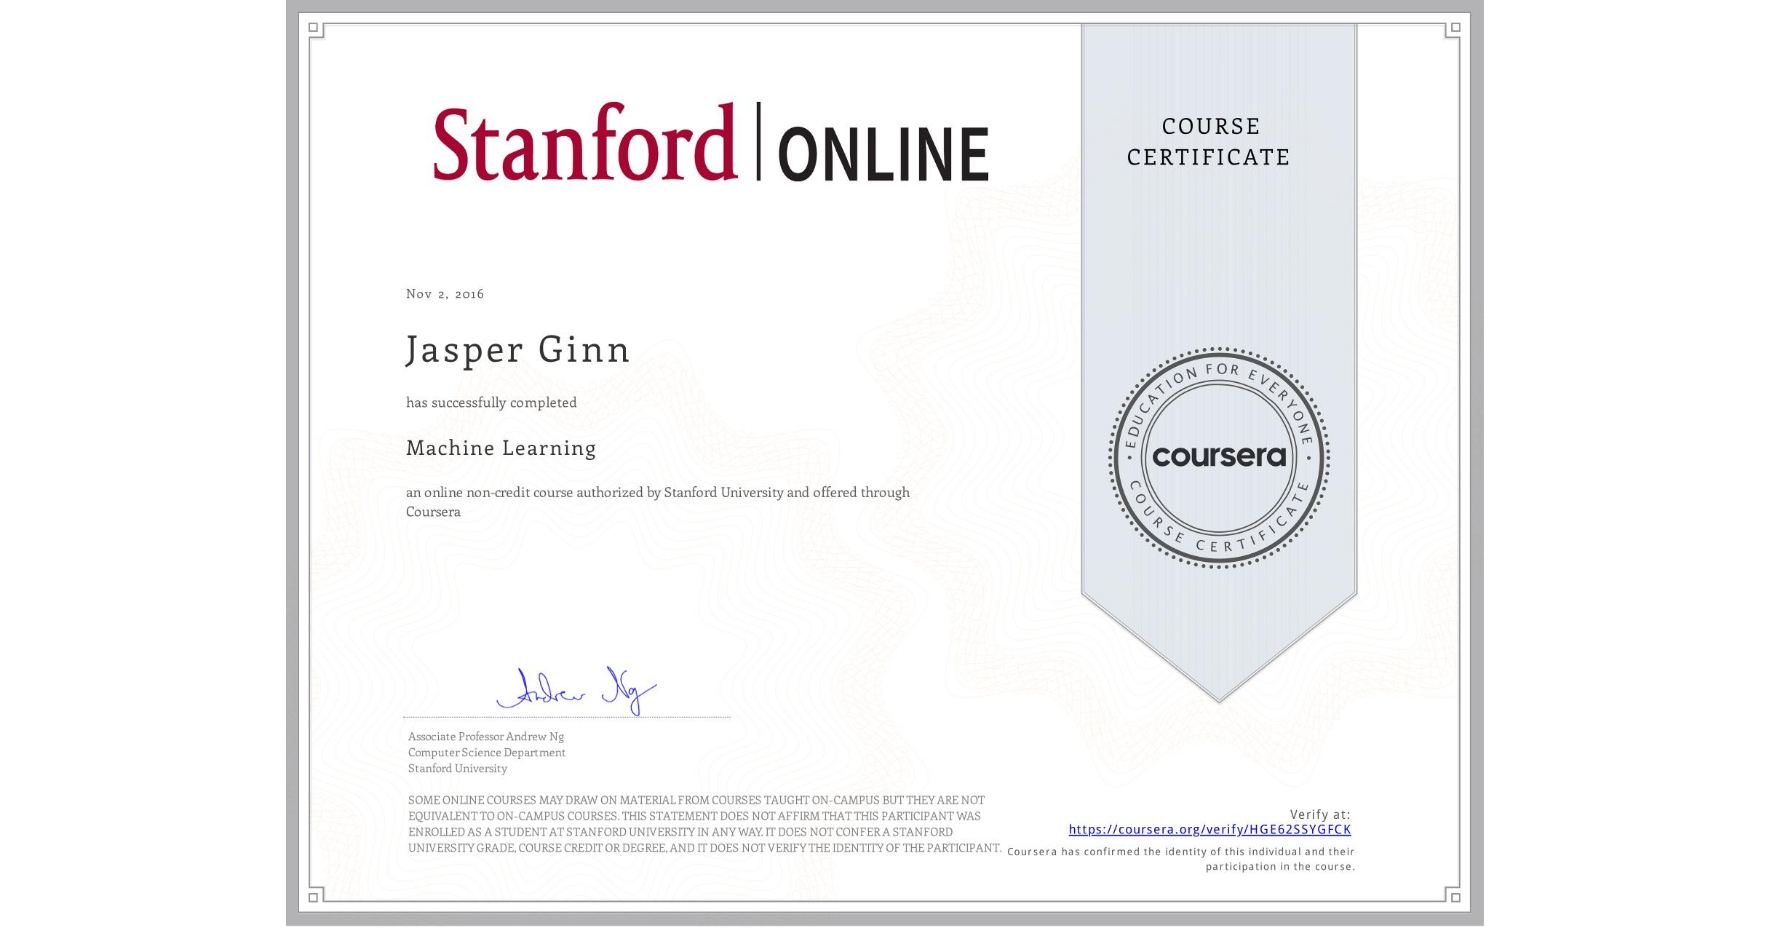 View certificate for Jasper Ginn, Machine Learning, an online non-credit course authorized by Stanford University and offered through Coursera